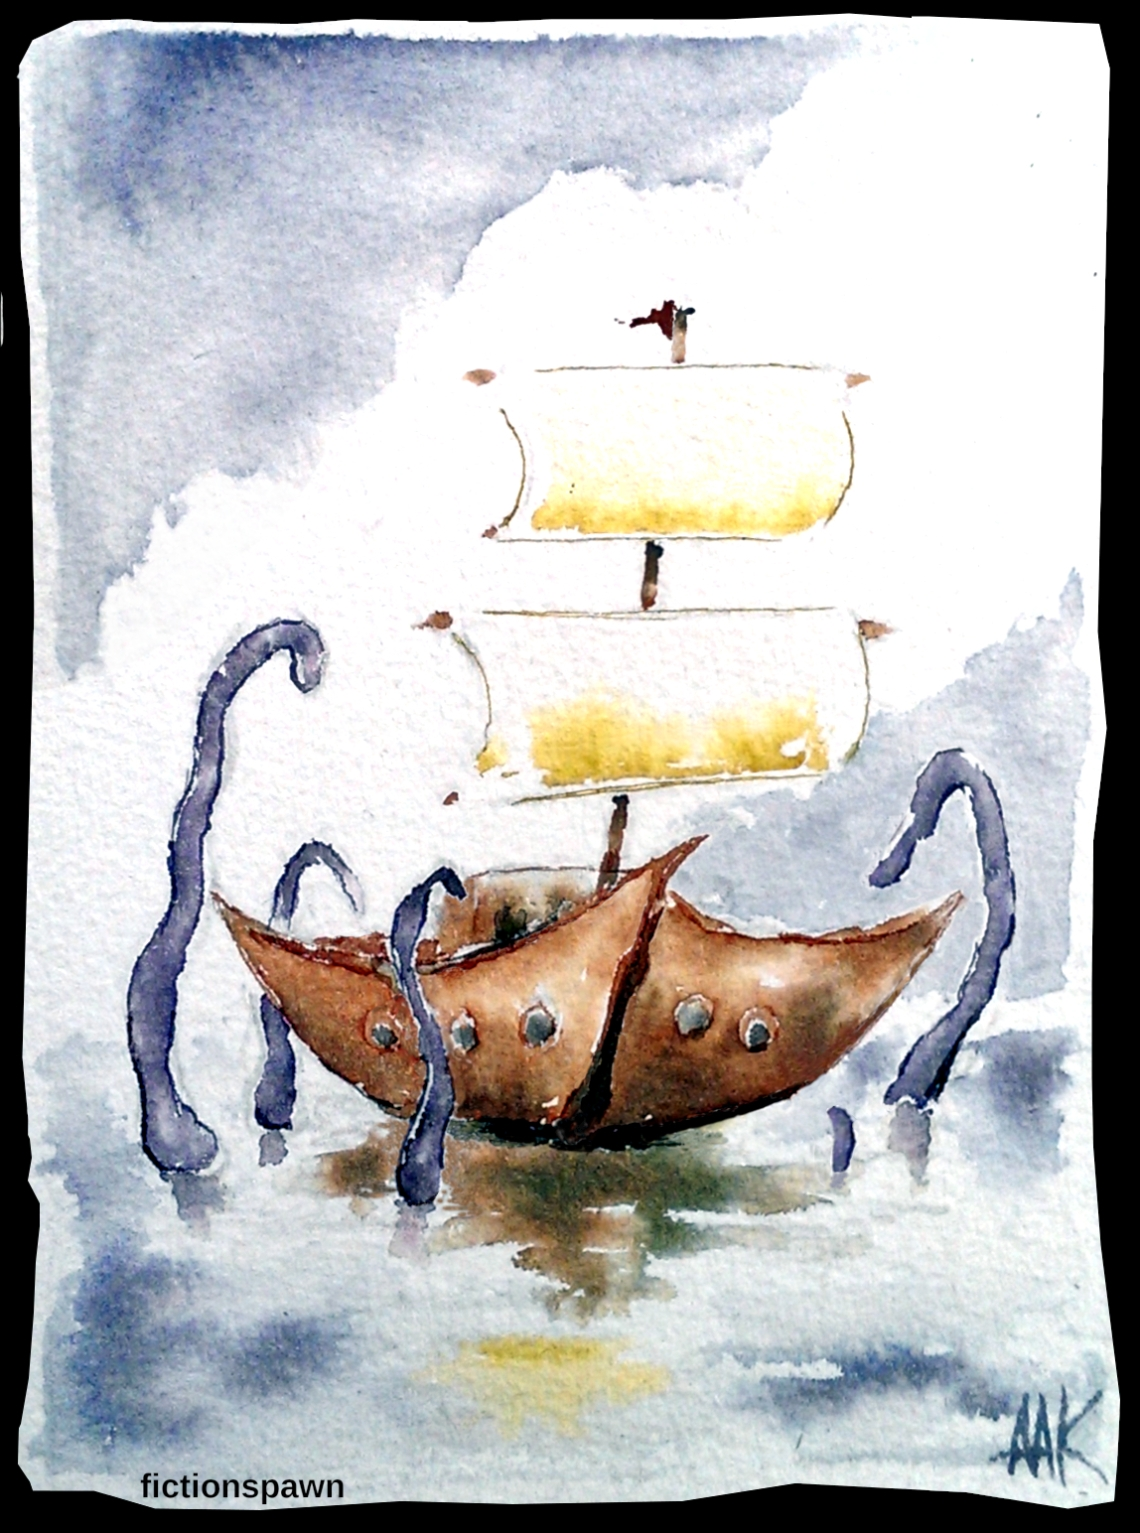 Tentacles attacking a sailboat Aak fictionspawn